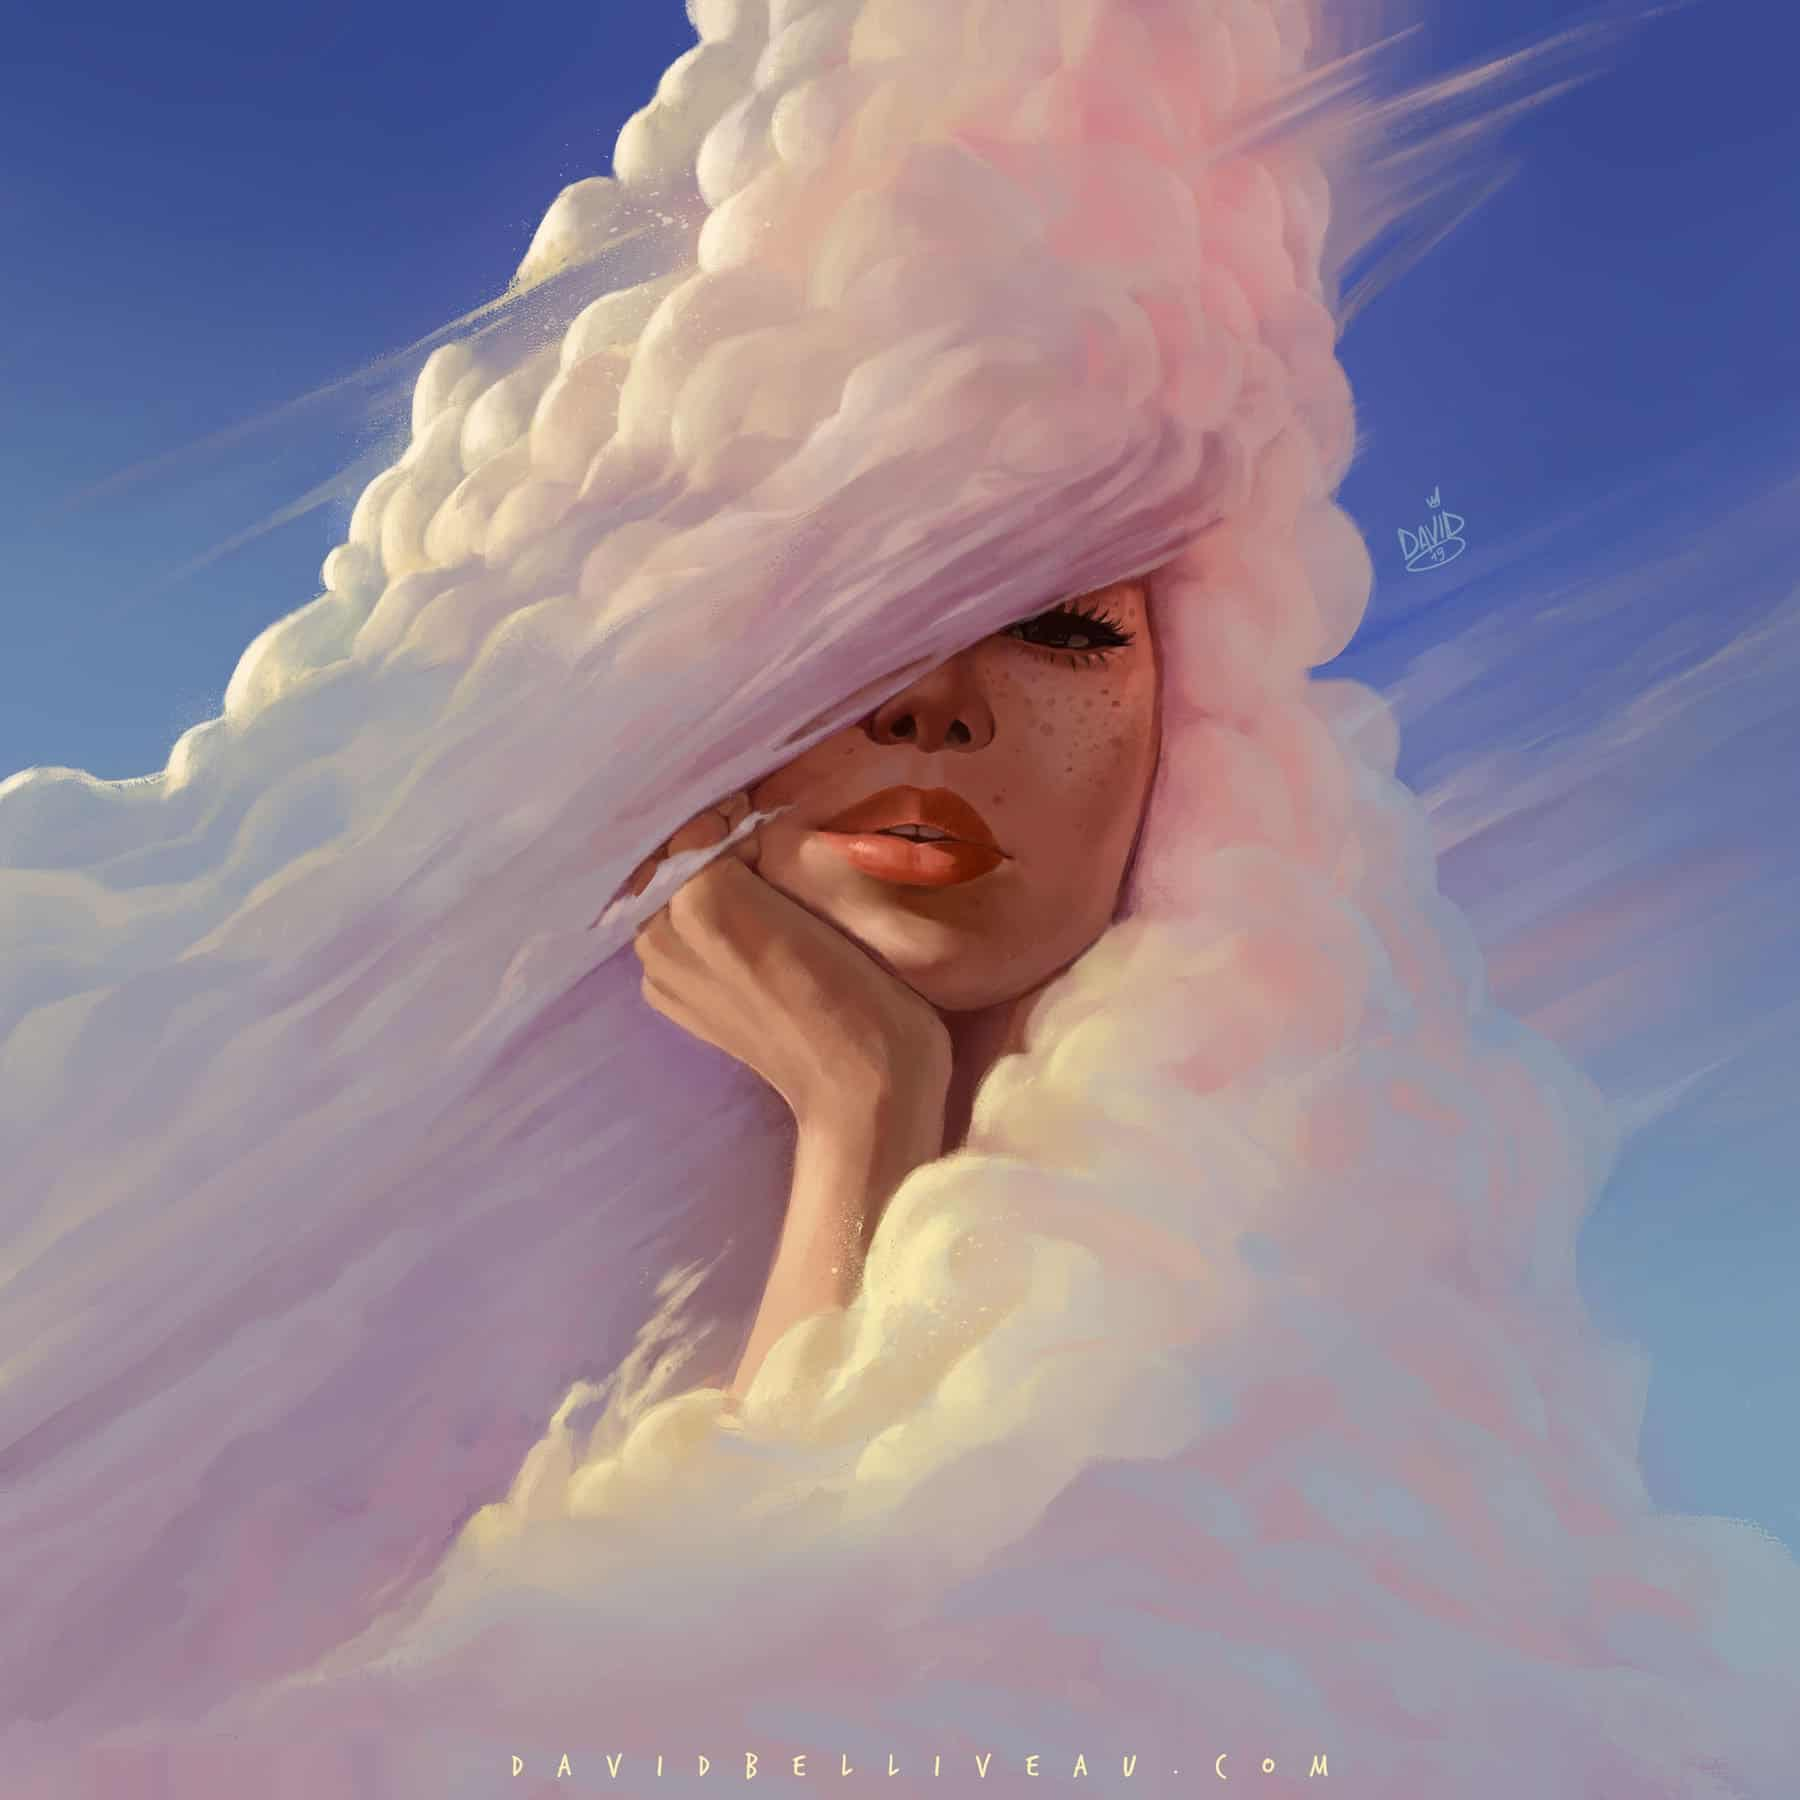 Digital Painting clouds portrait david belliveau